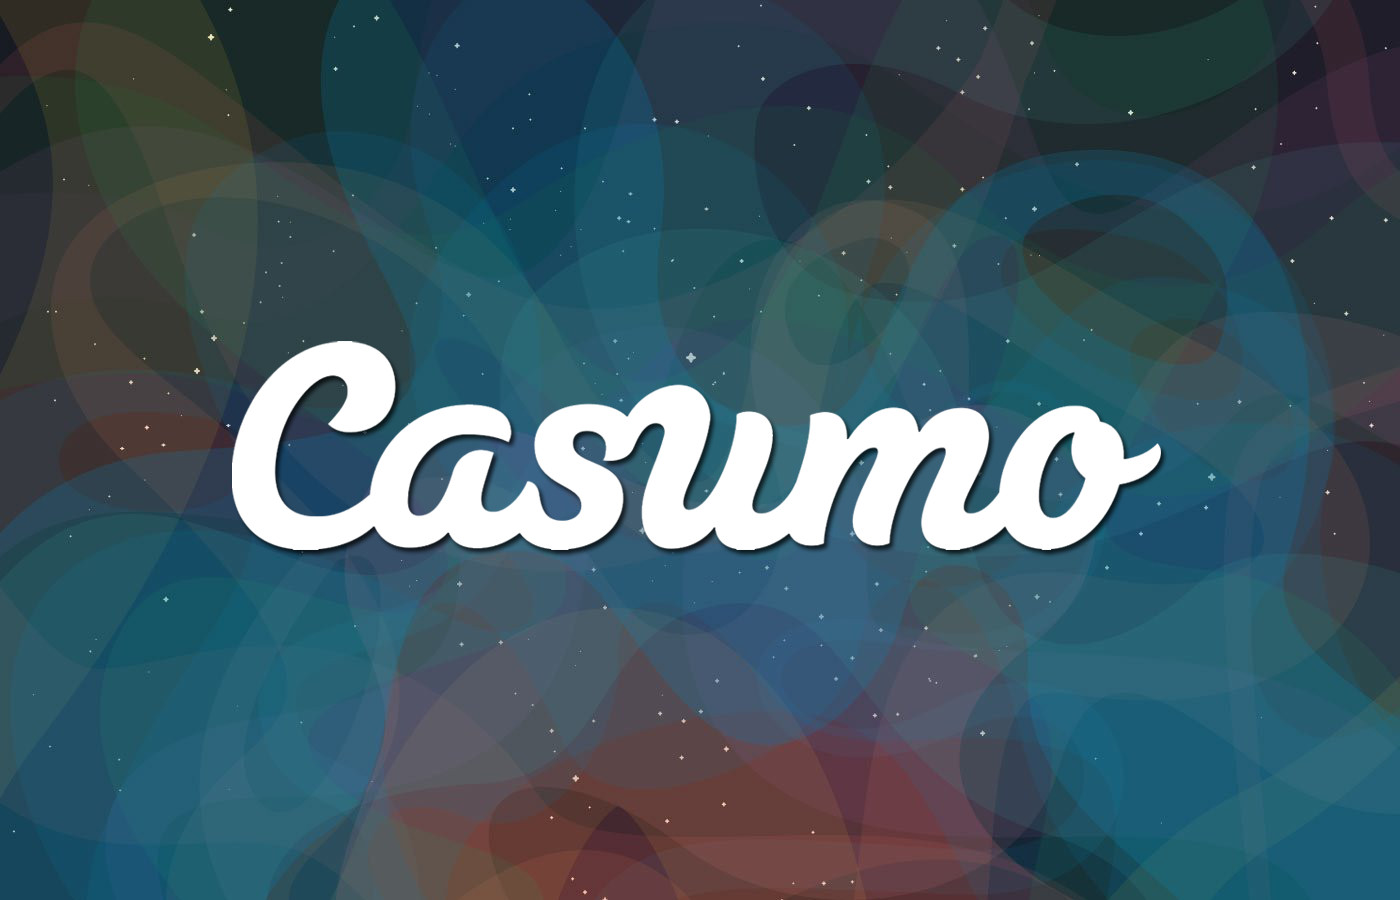 Casumo Casino - Overview